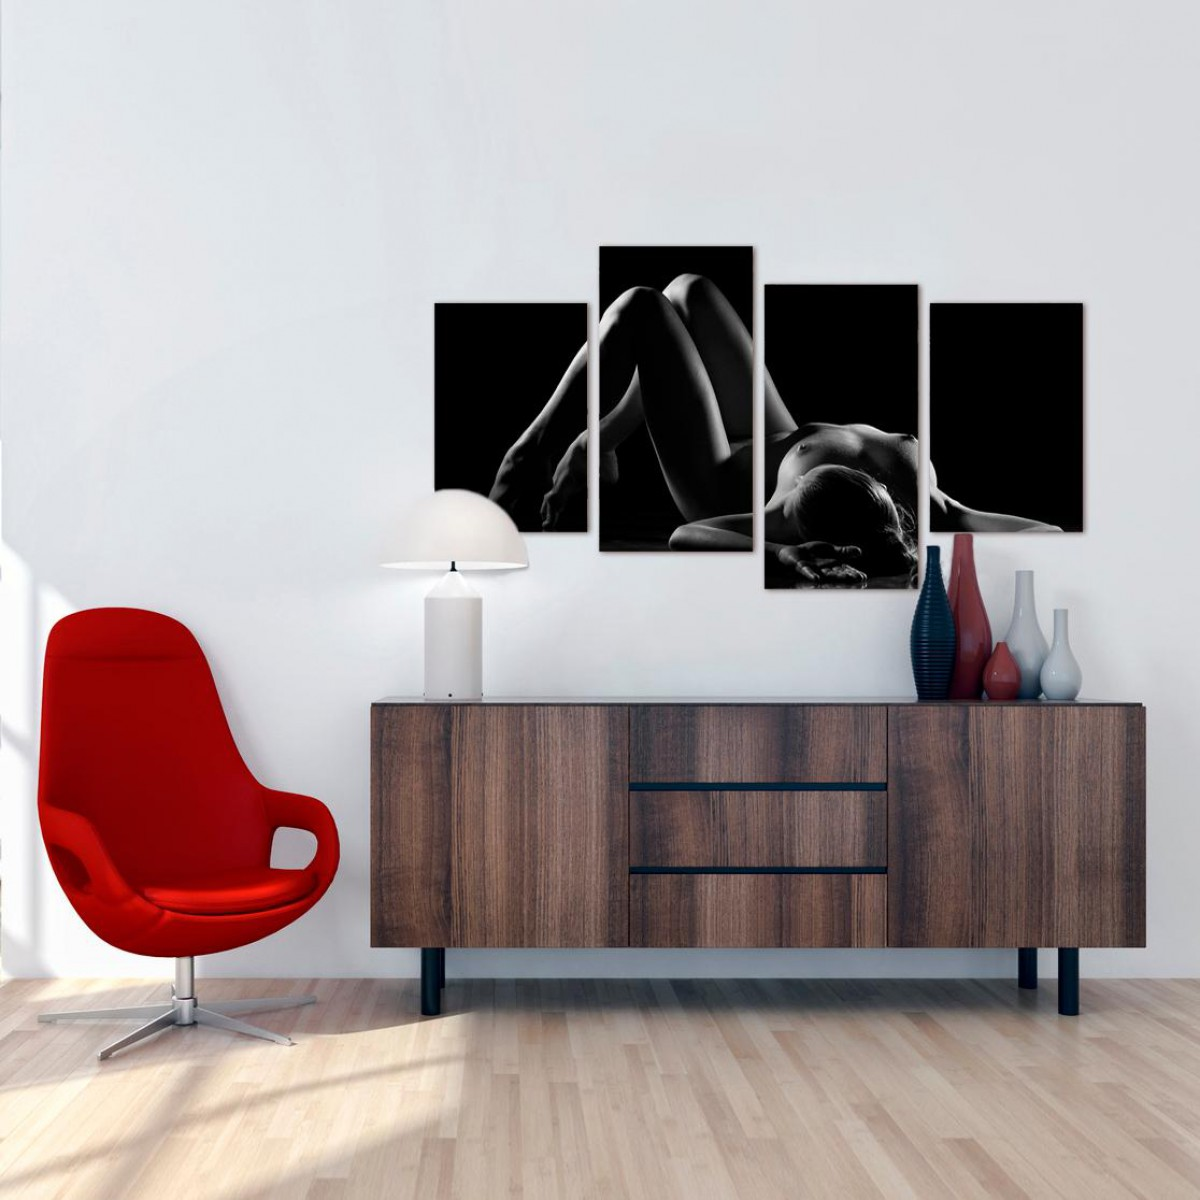 Sensual Canvas Art In Black White For Your Bedroom